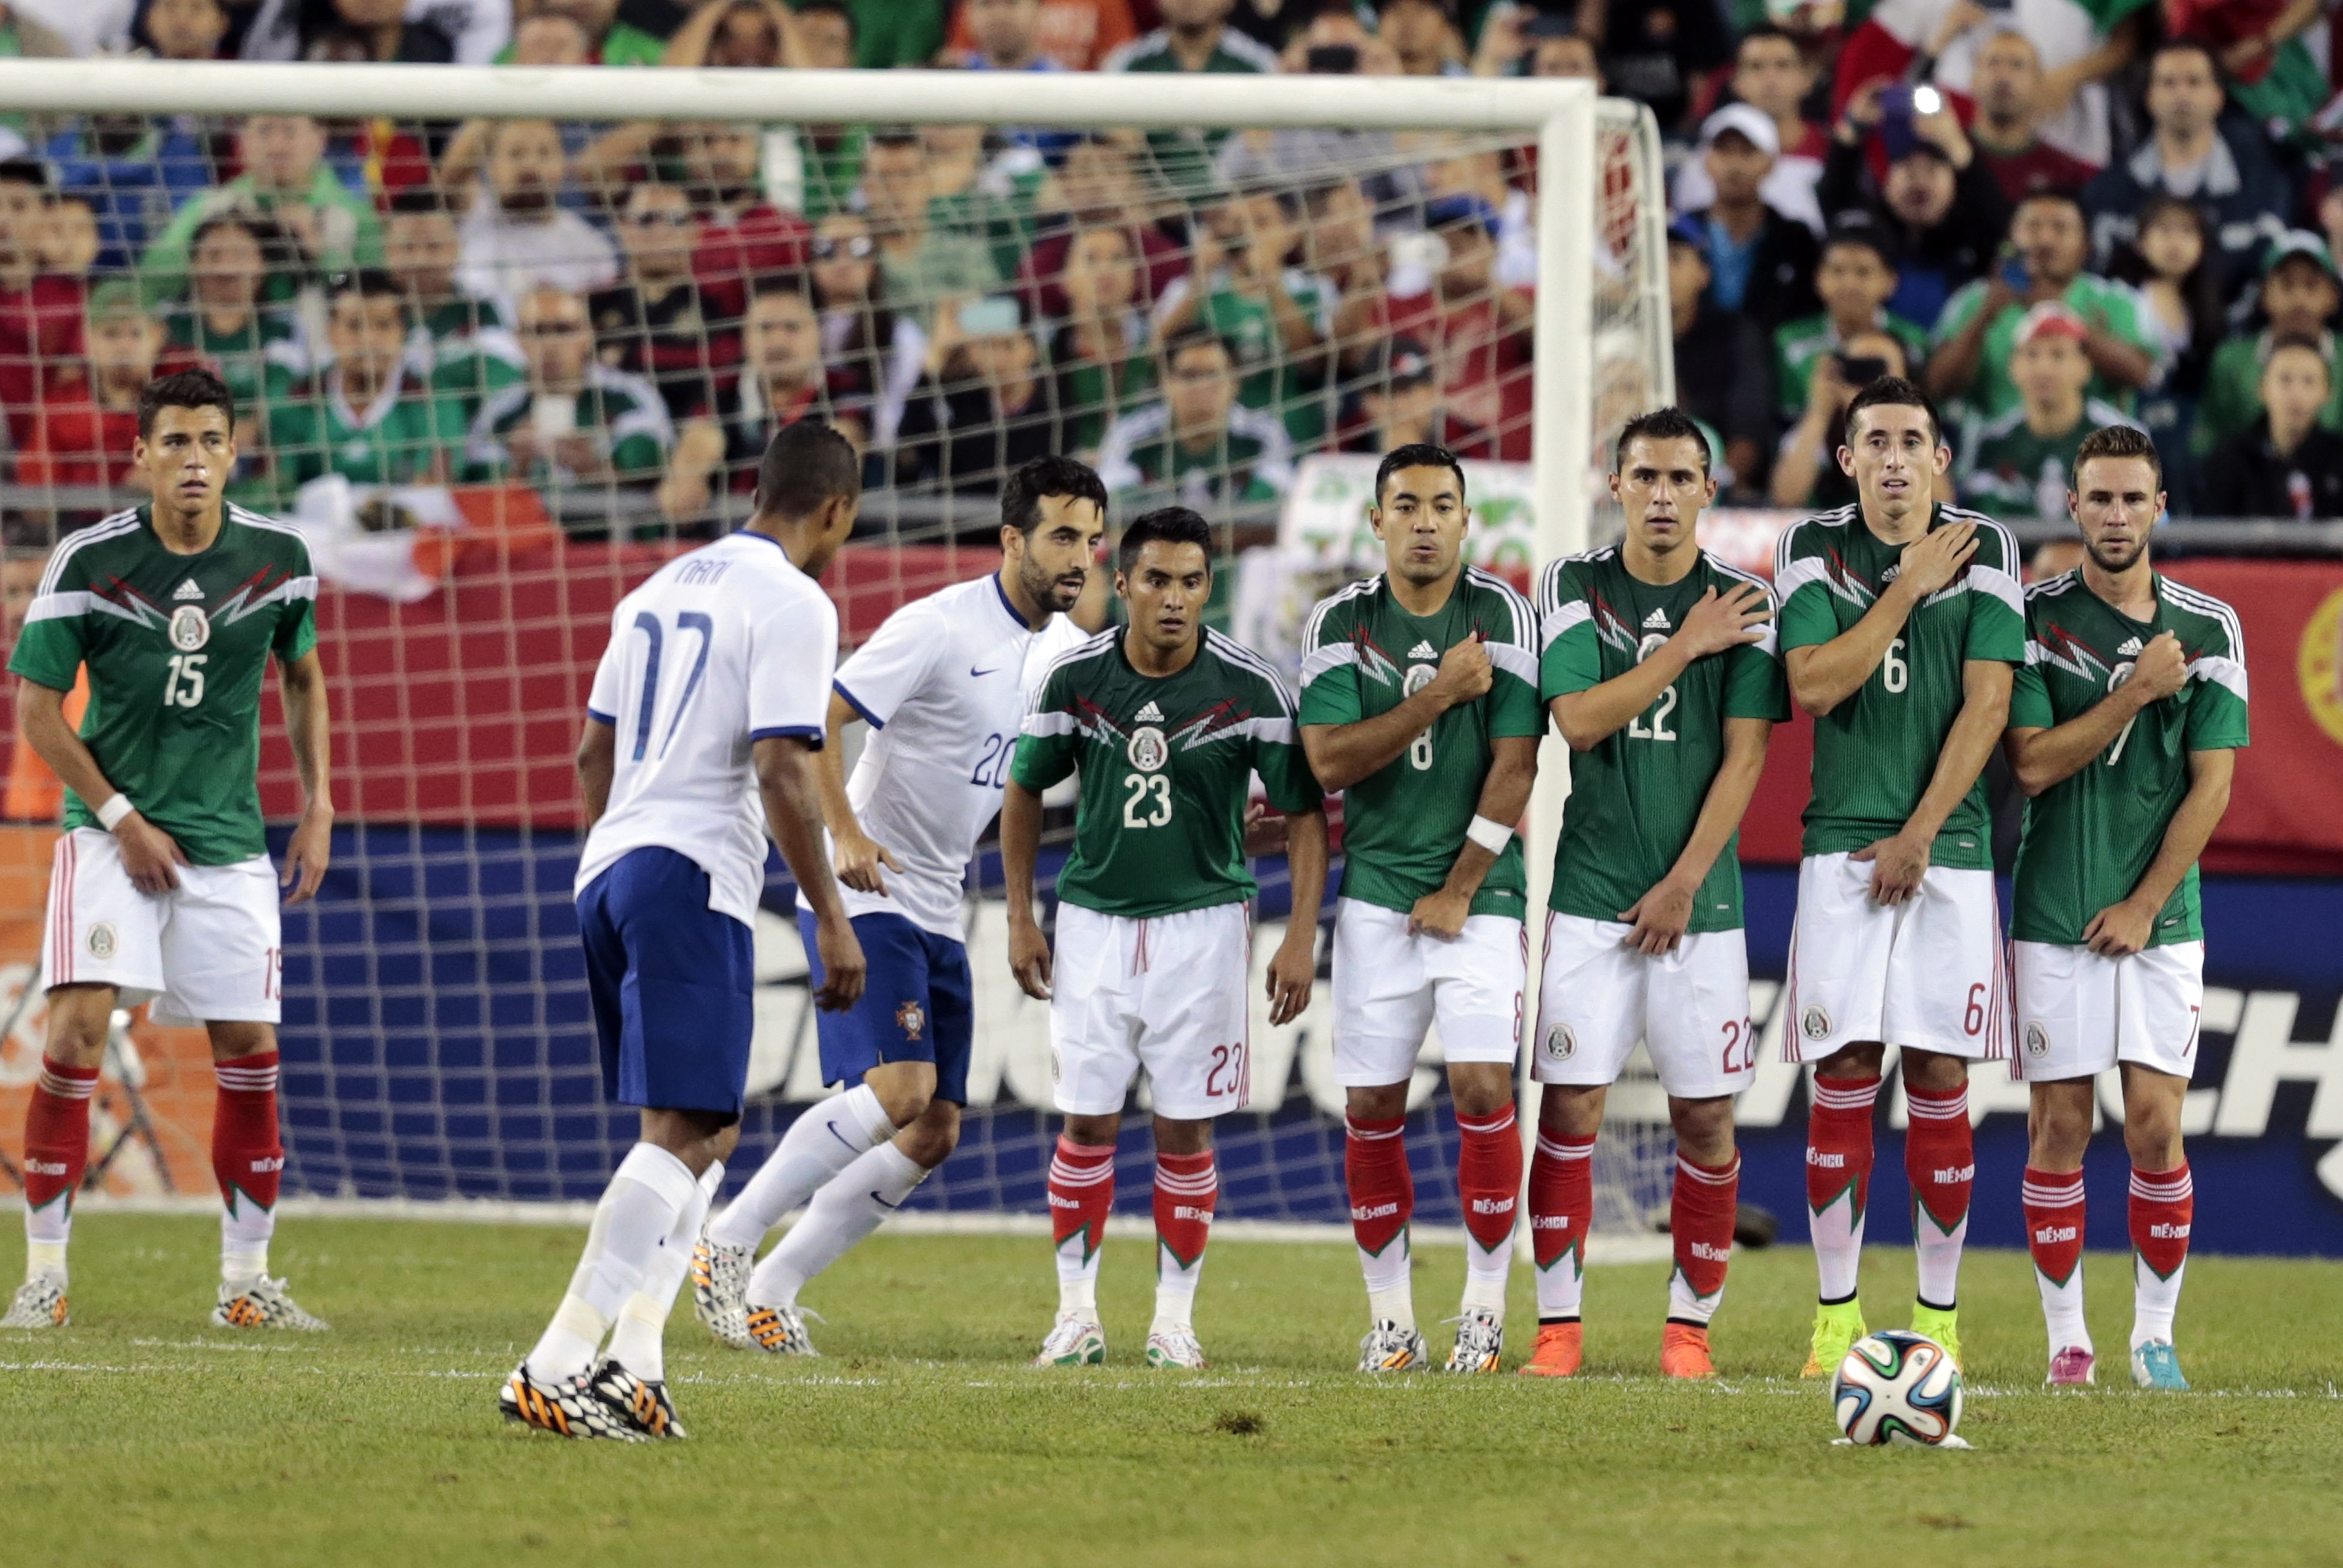 The Mexican wall waits for a free kick from Portugal's Nani (17) during an international friendly before the 2014 World Cup, Foxborough, Mass., June 6, 2014.